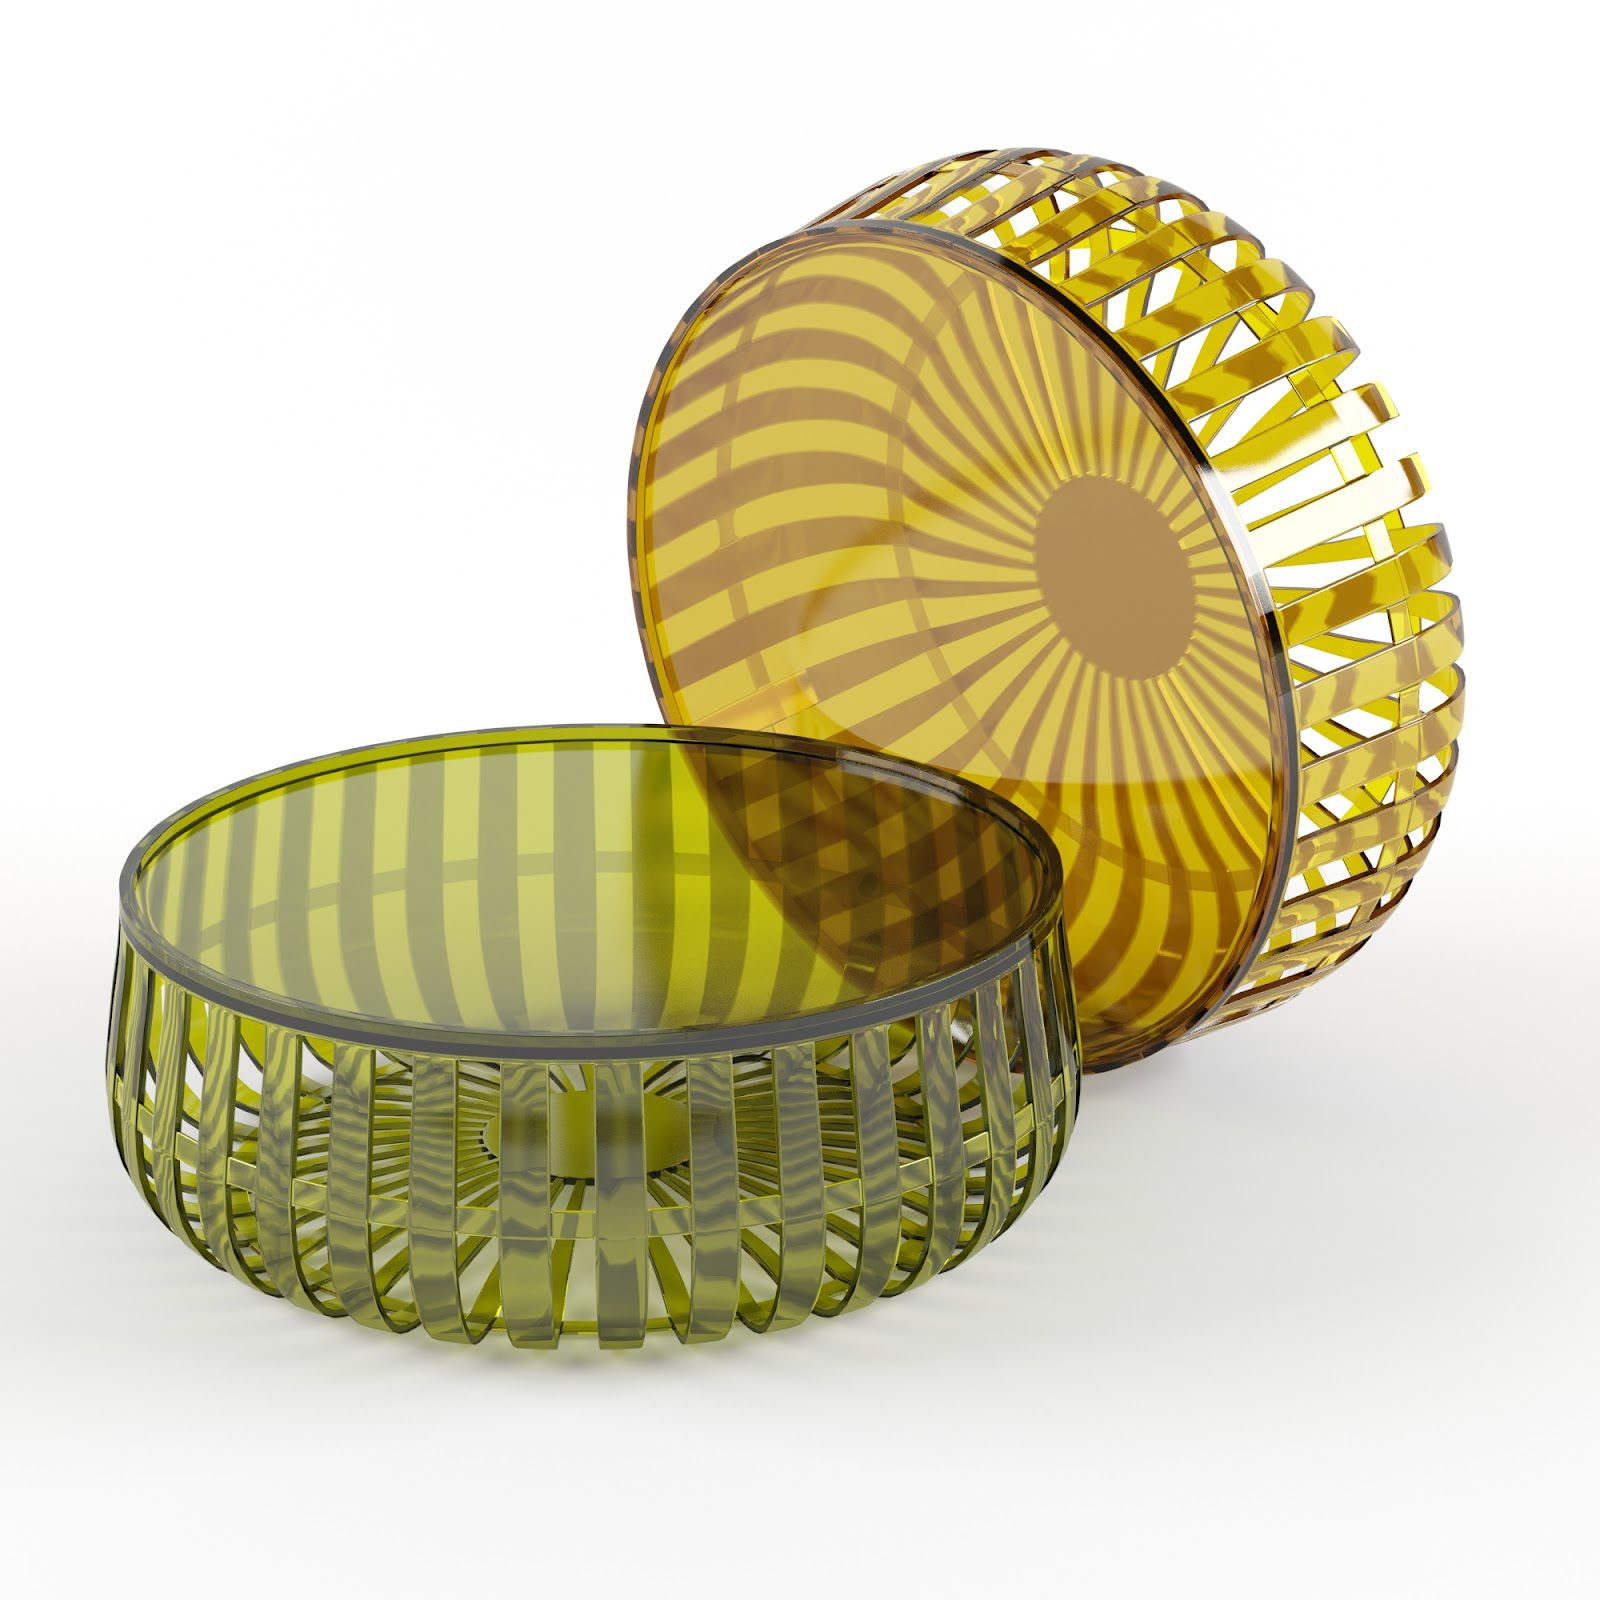 Delightful Kartell Panier Modern Coffee Table By Ronan And Erwan Bouroullec: Http://www